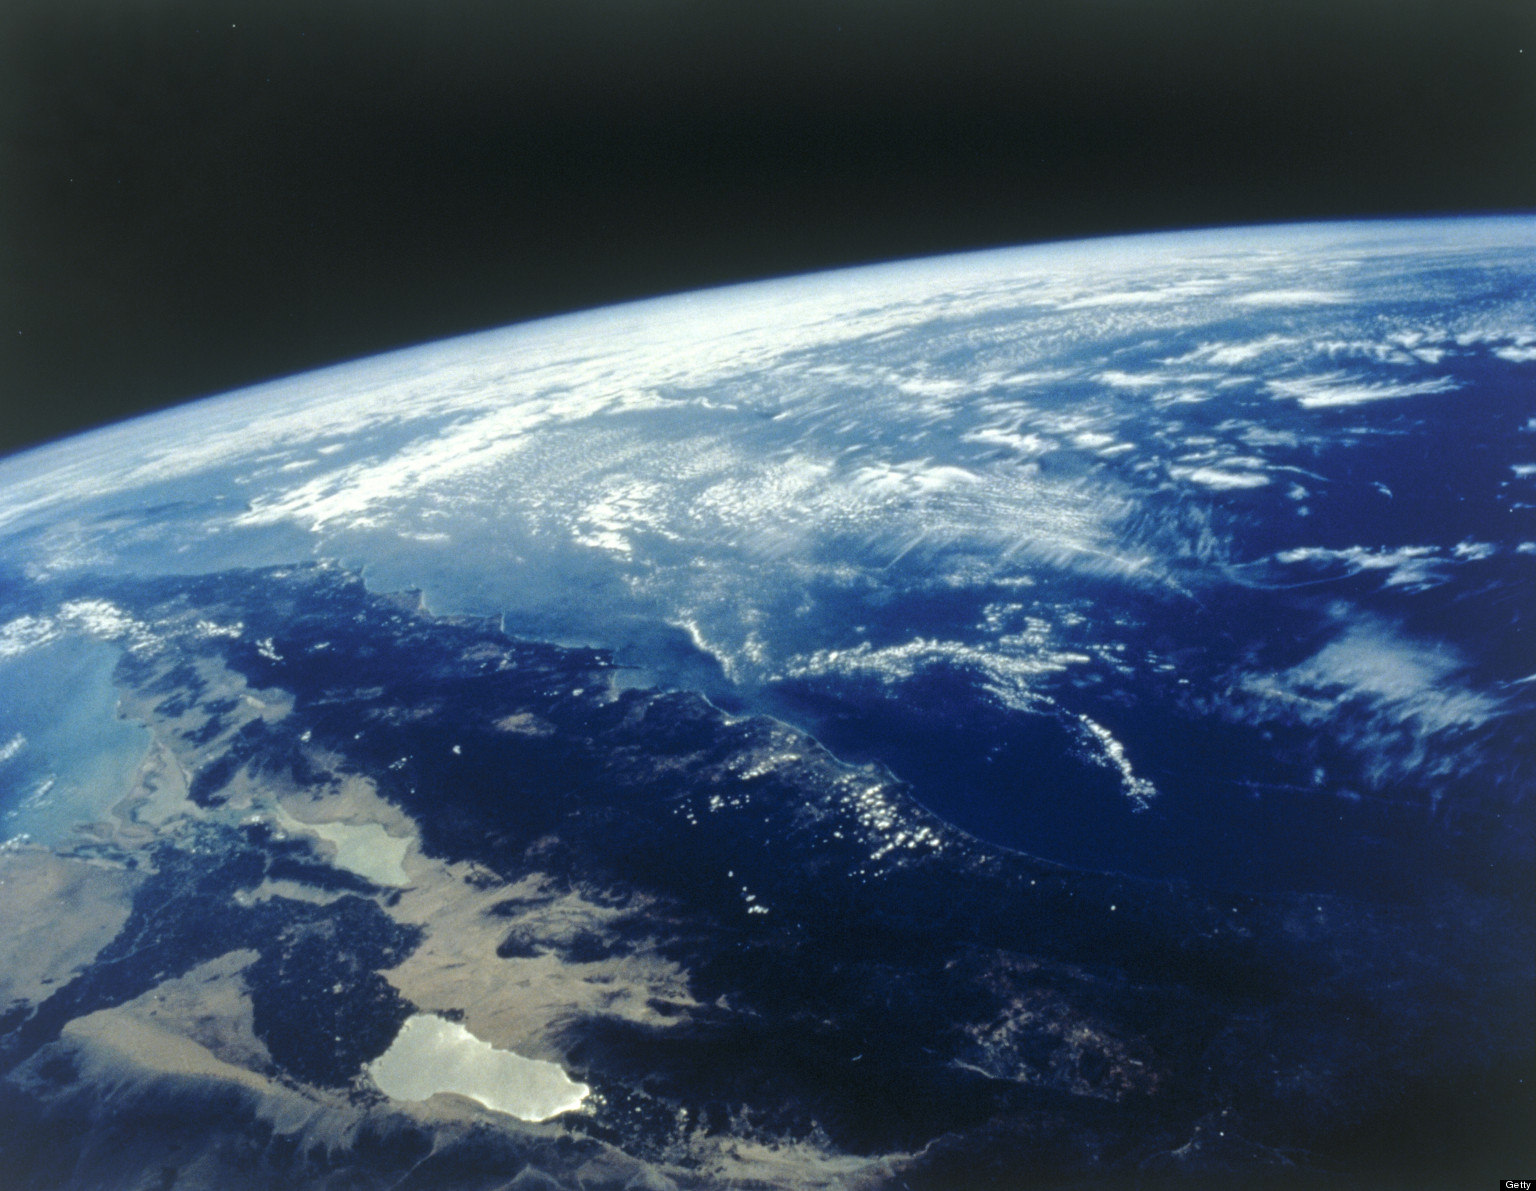 NASA's AirSWOT Program To Measure Planet's Water Resources ...